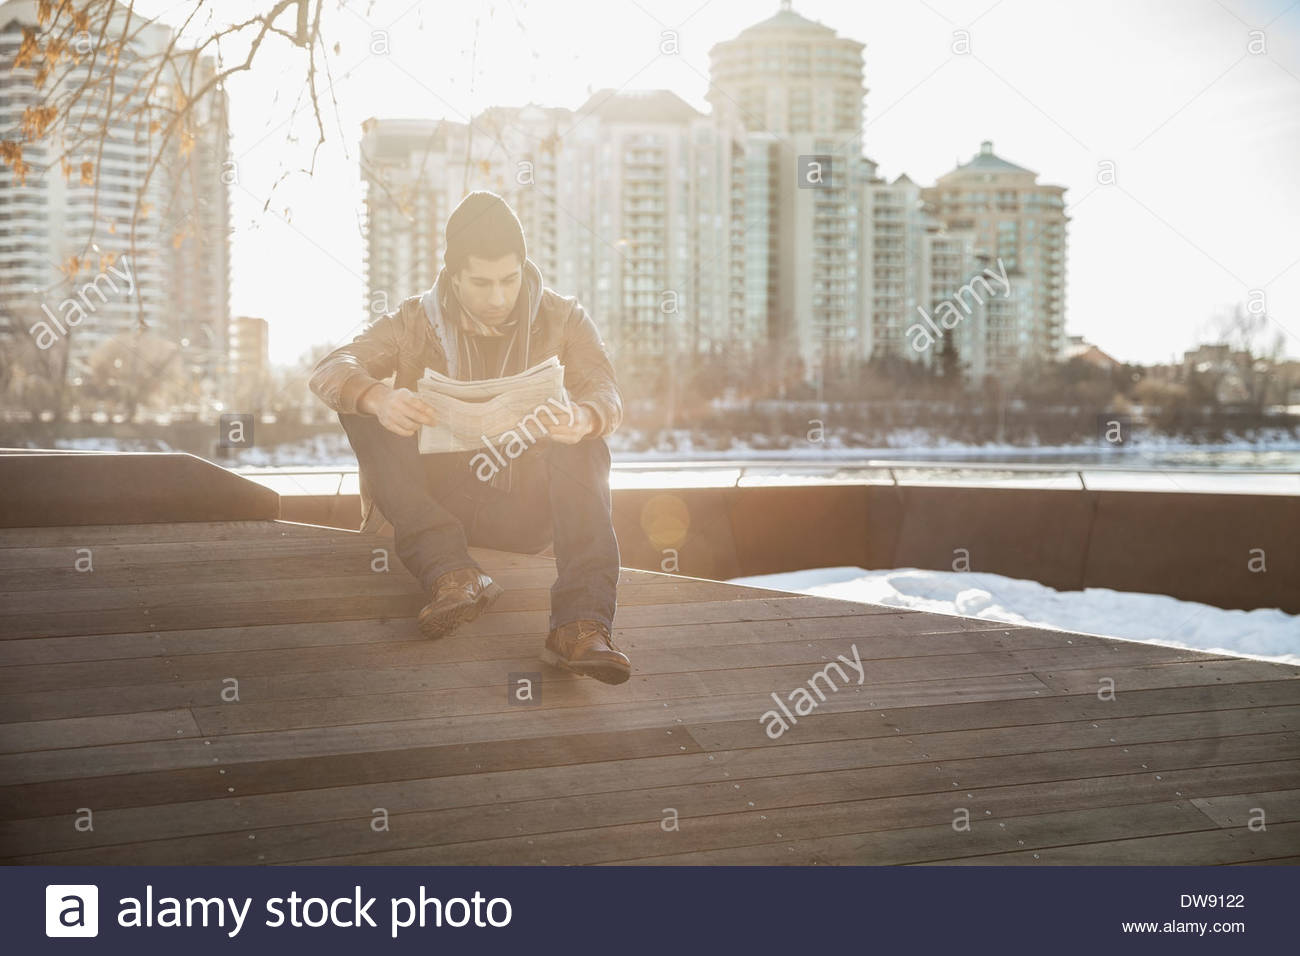 Man reading newspaper outdoors against cityscape - Stock Image